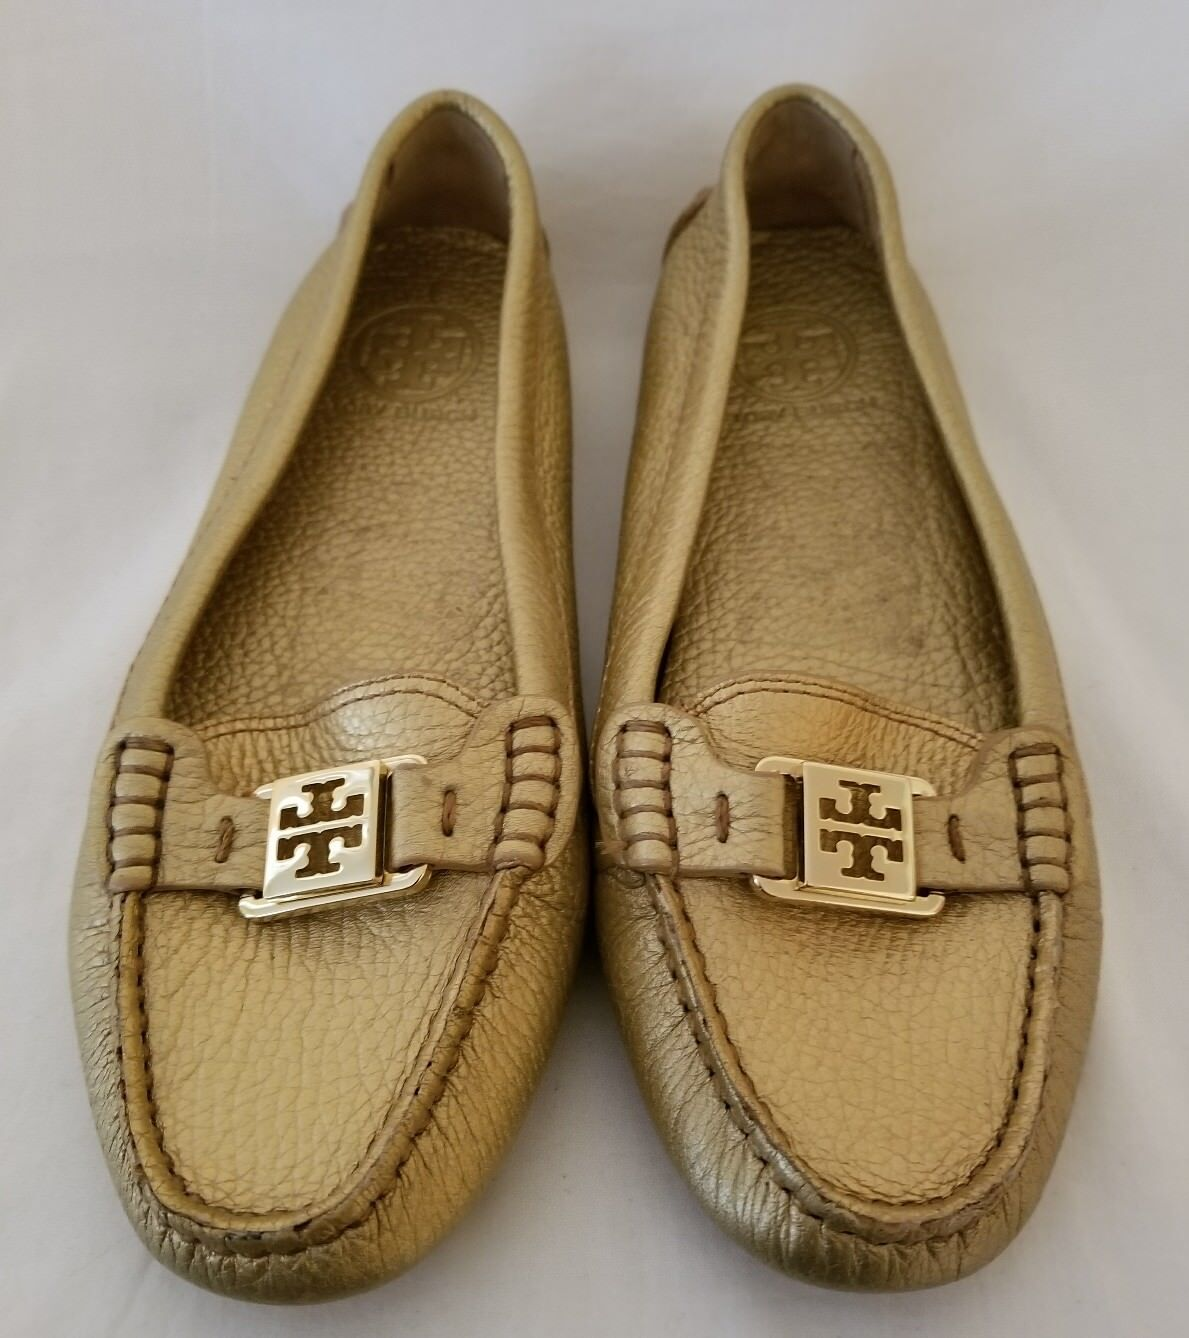 Tory Burch Kendrick Pebbled gold Leather Leather Leather Driving Flats Slip On Loafers Size 7.5 697e62